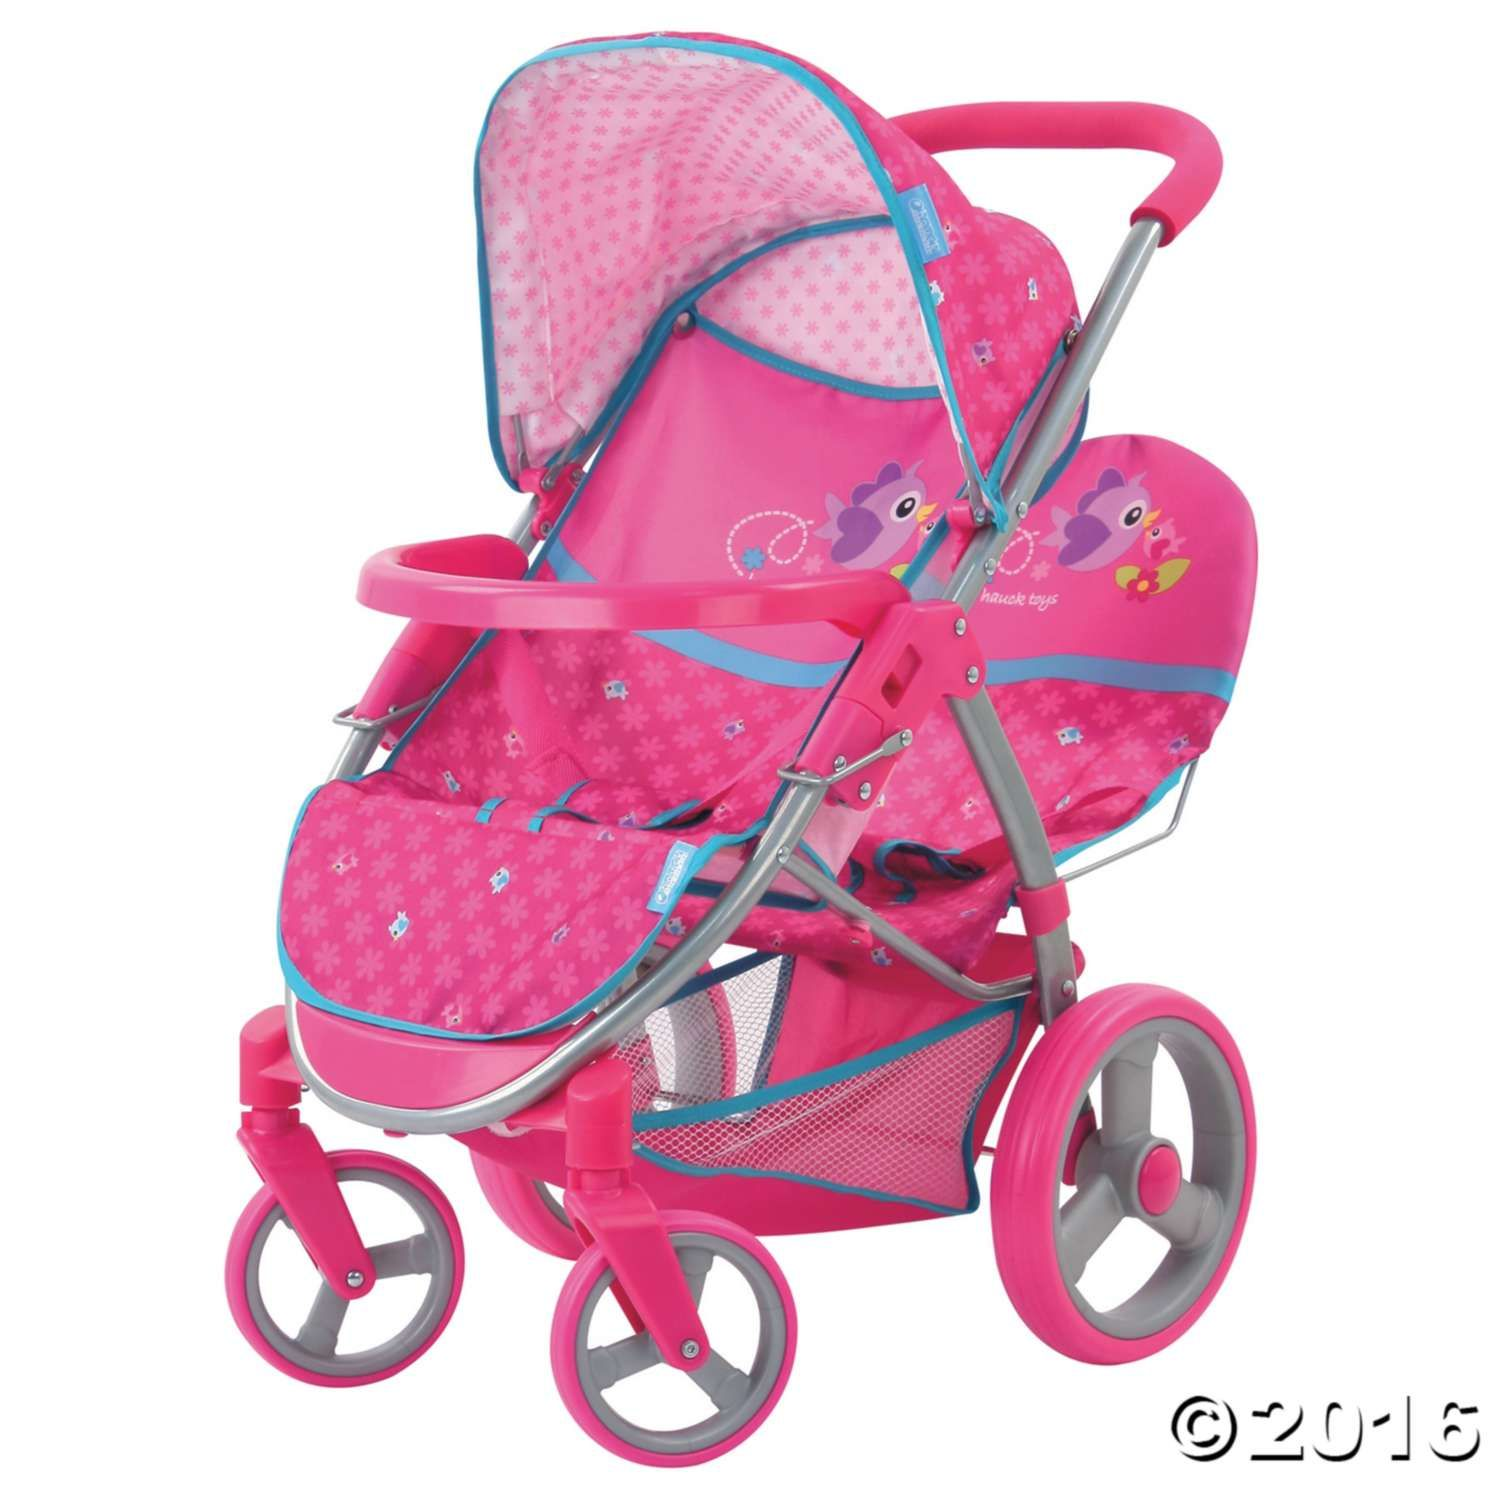 Malibu Double Doll Stroller MindWare Baby doll